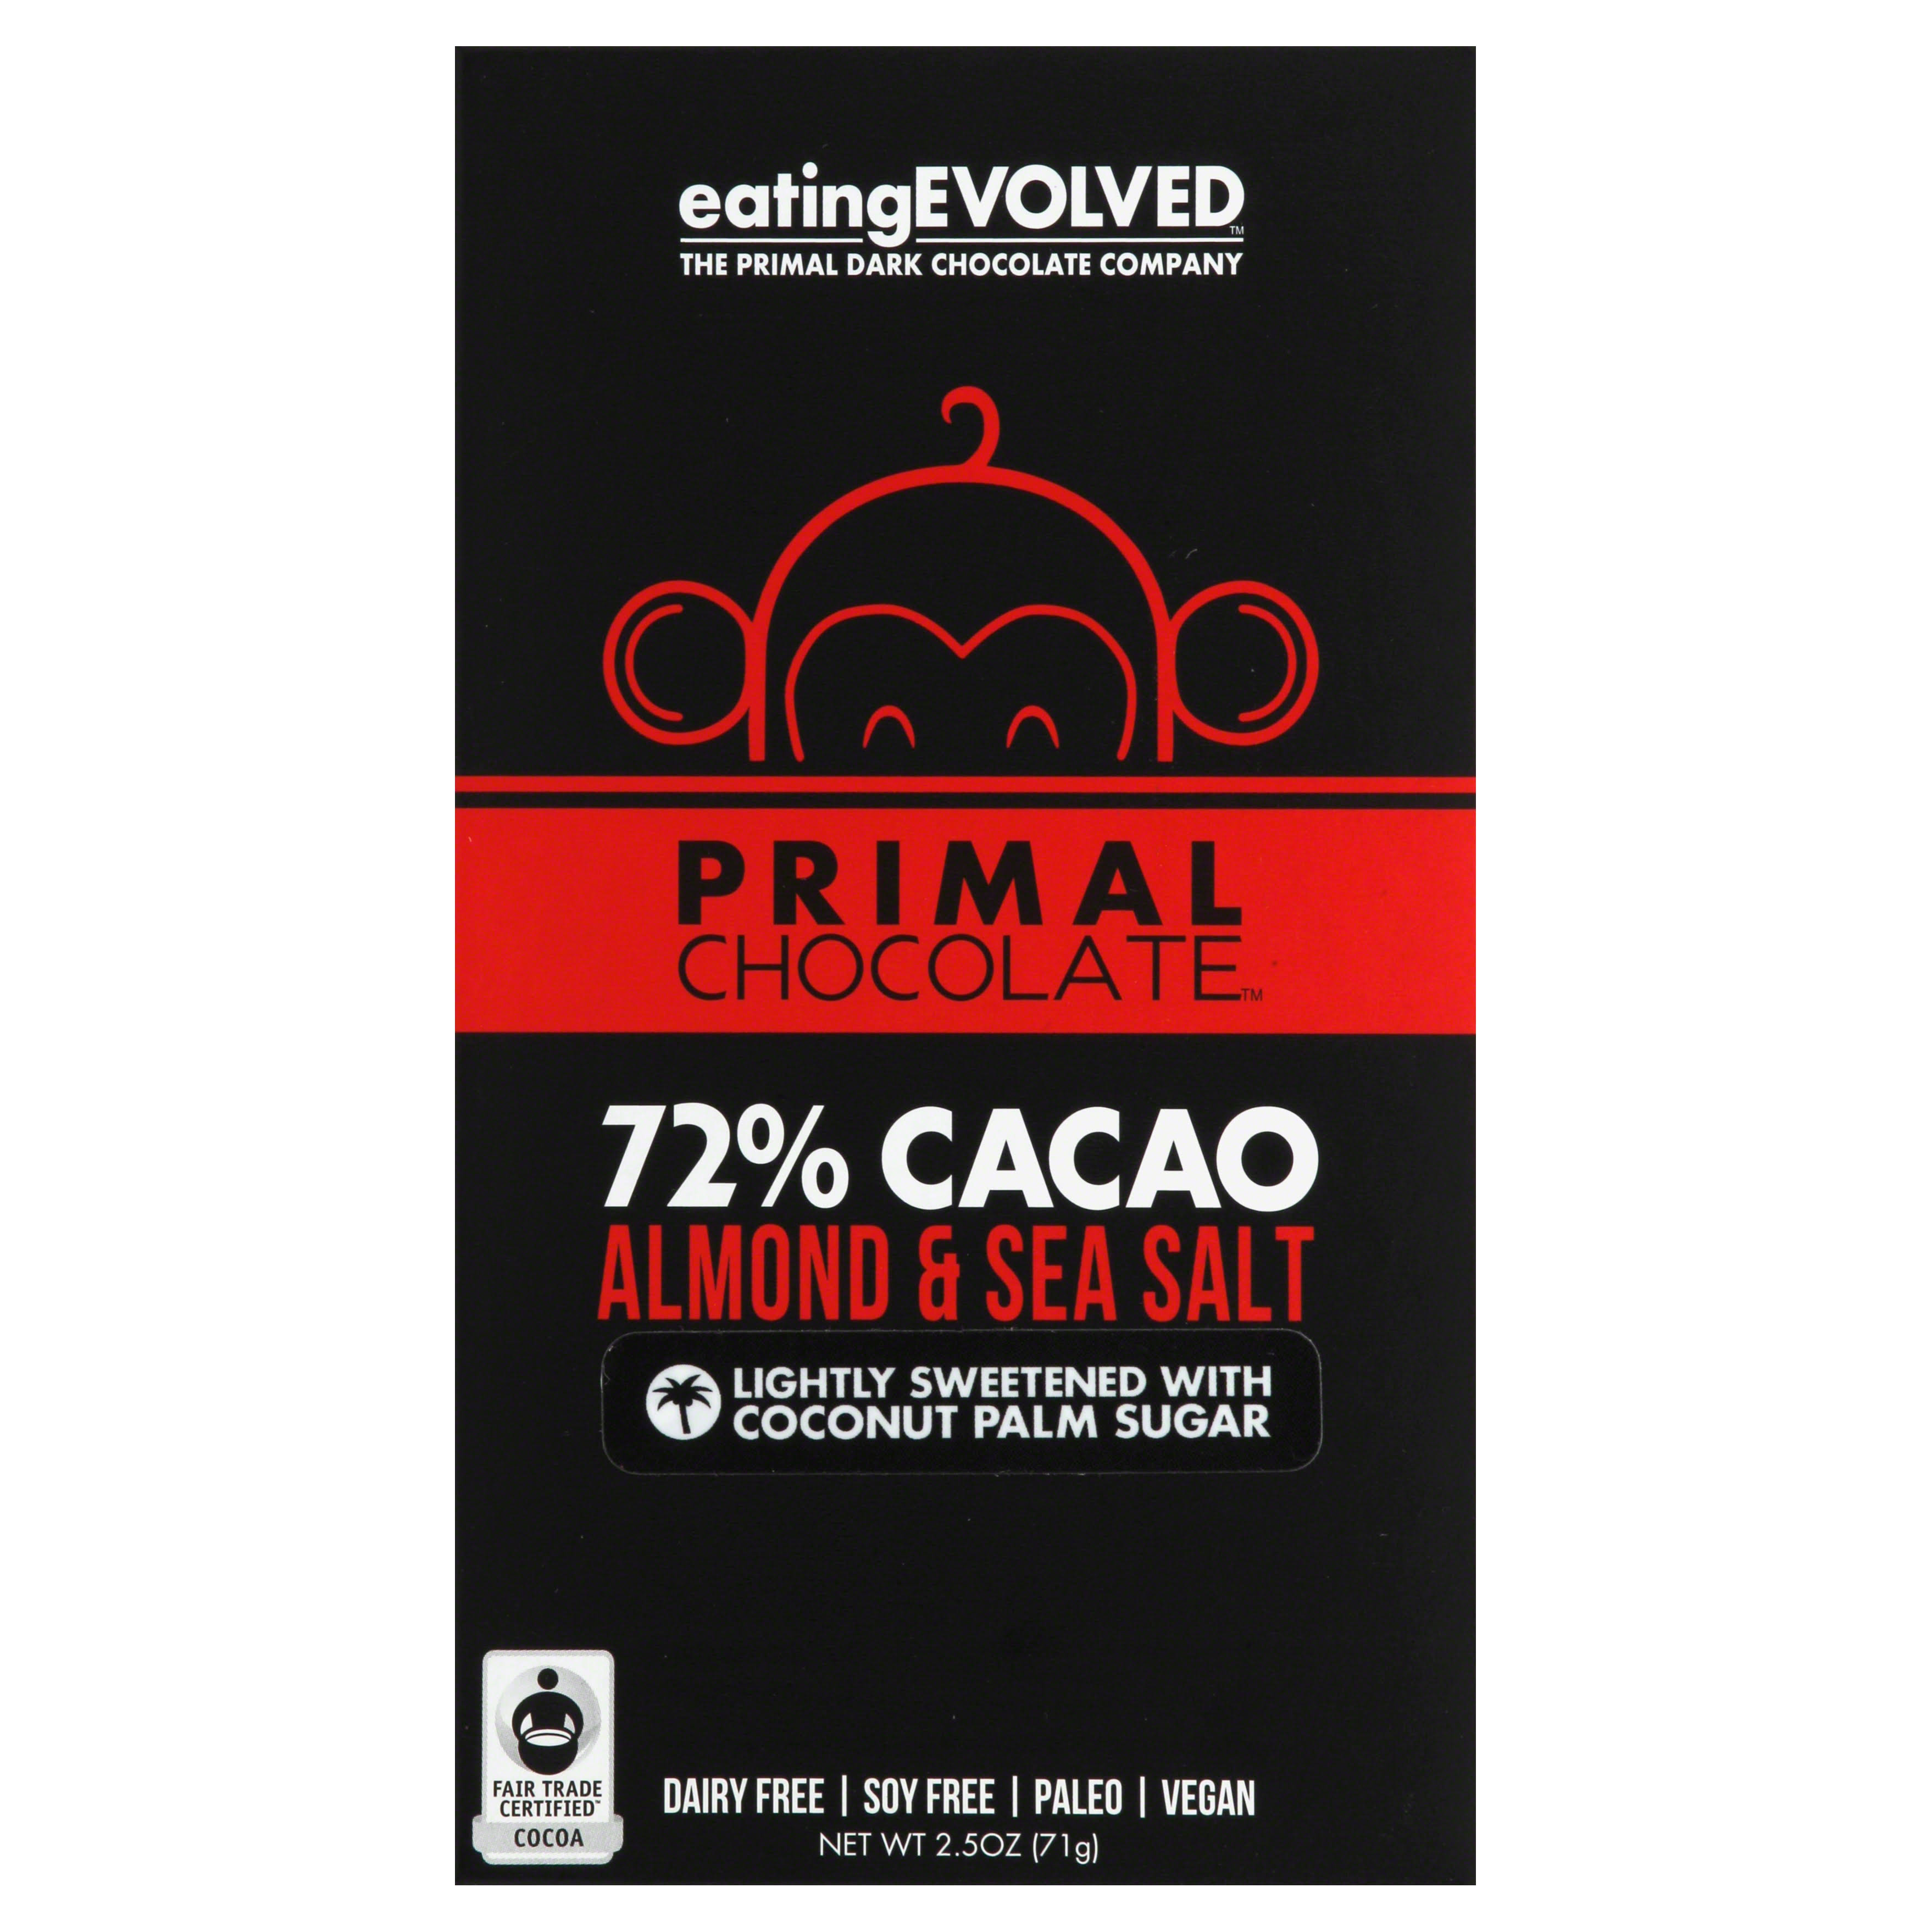 Primal Chocolate - Almond and Sea Salt, 2.5oz